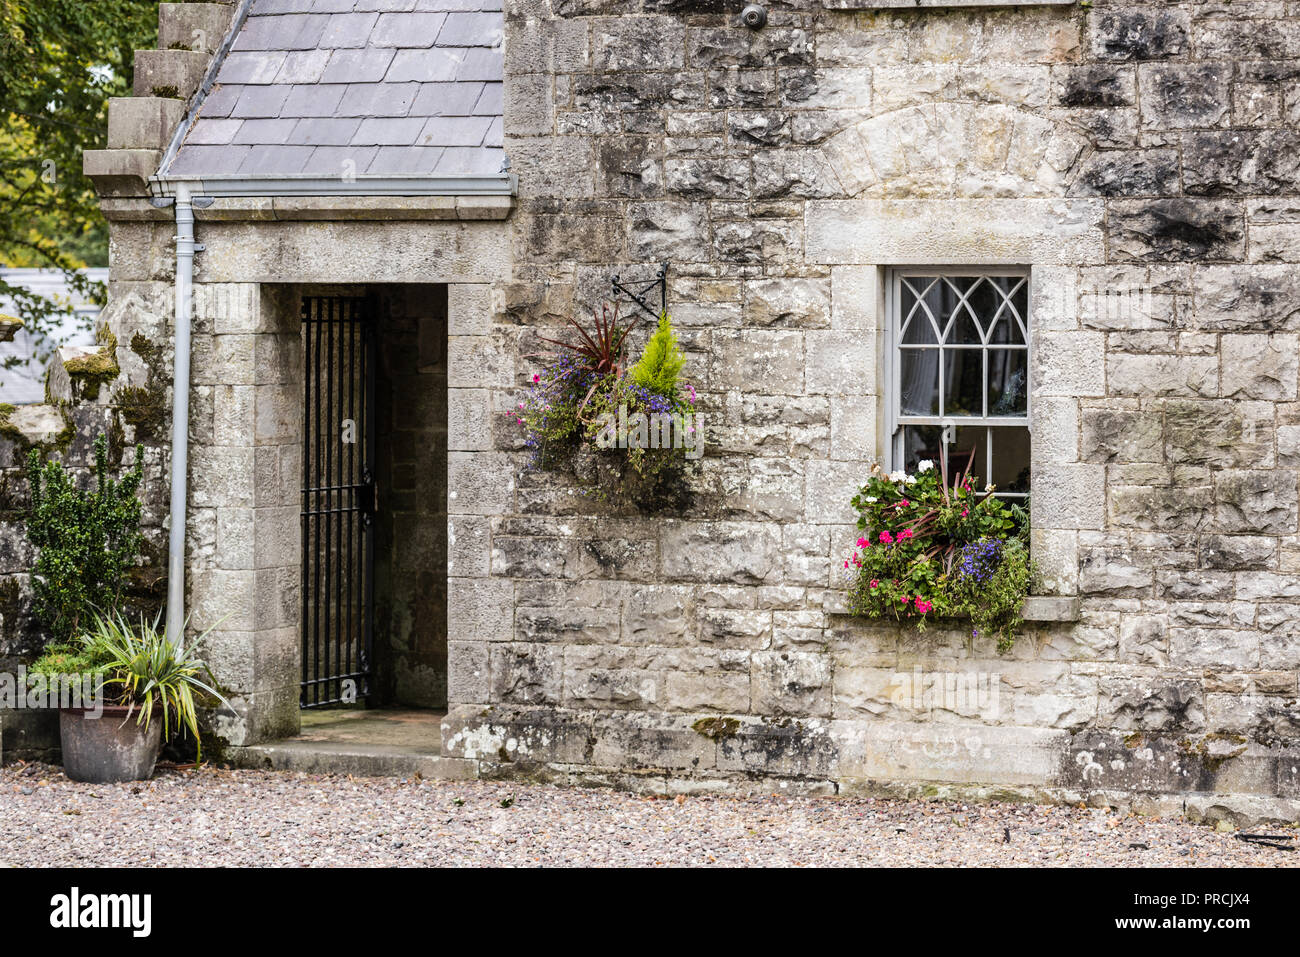 Hanging basket and window box on the stone wall of an old Irish cottage. - Stock Image